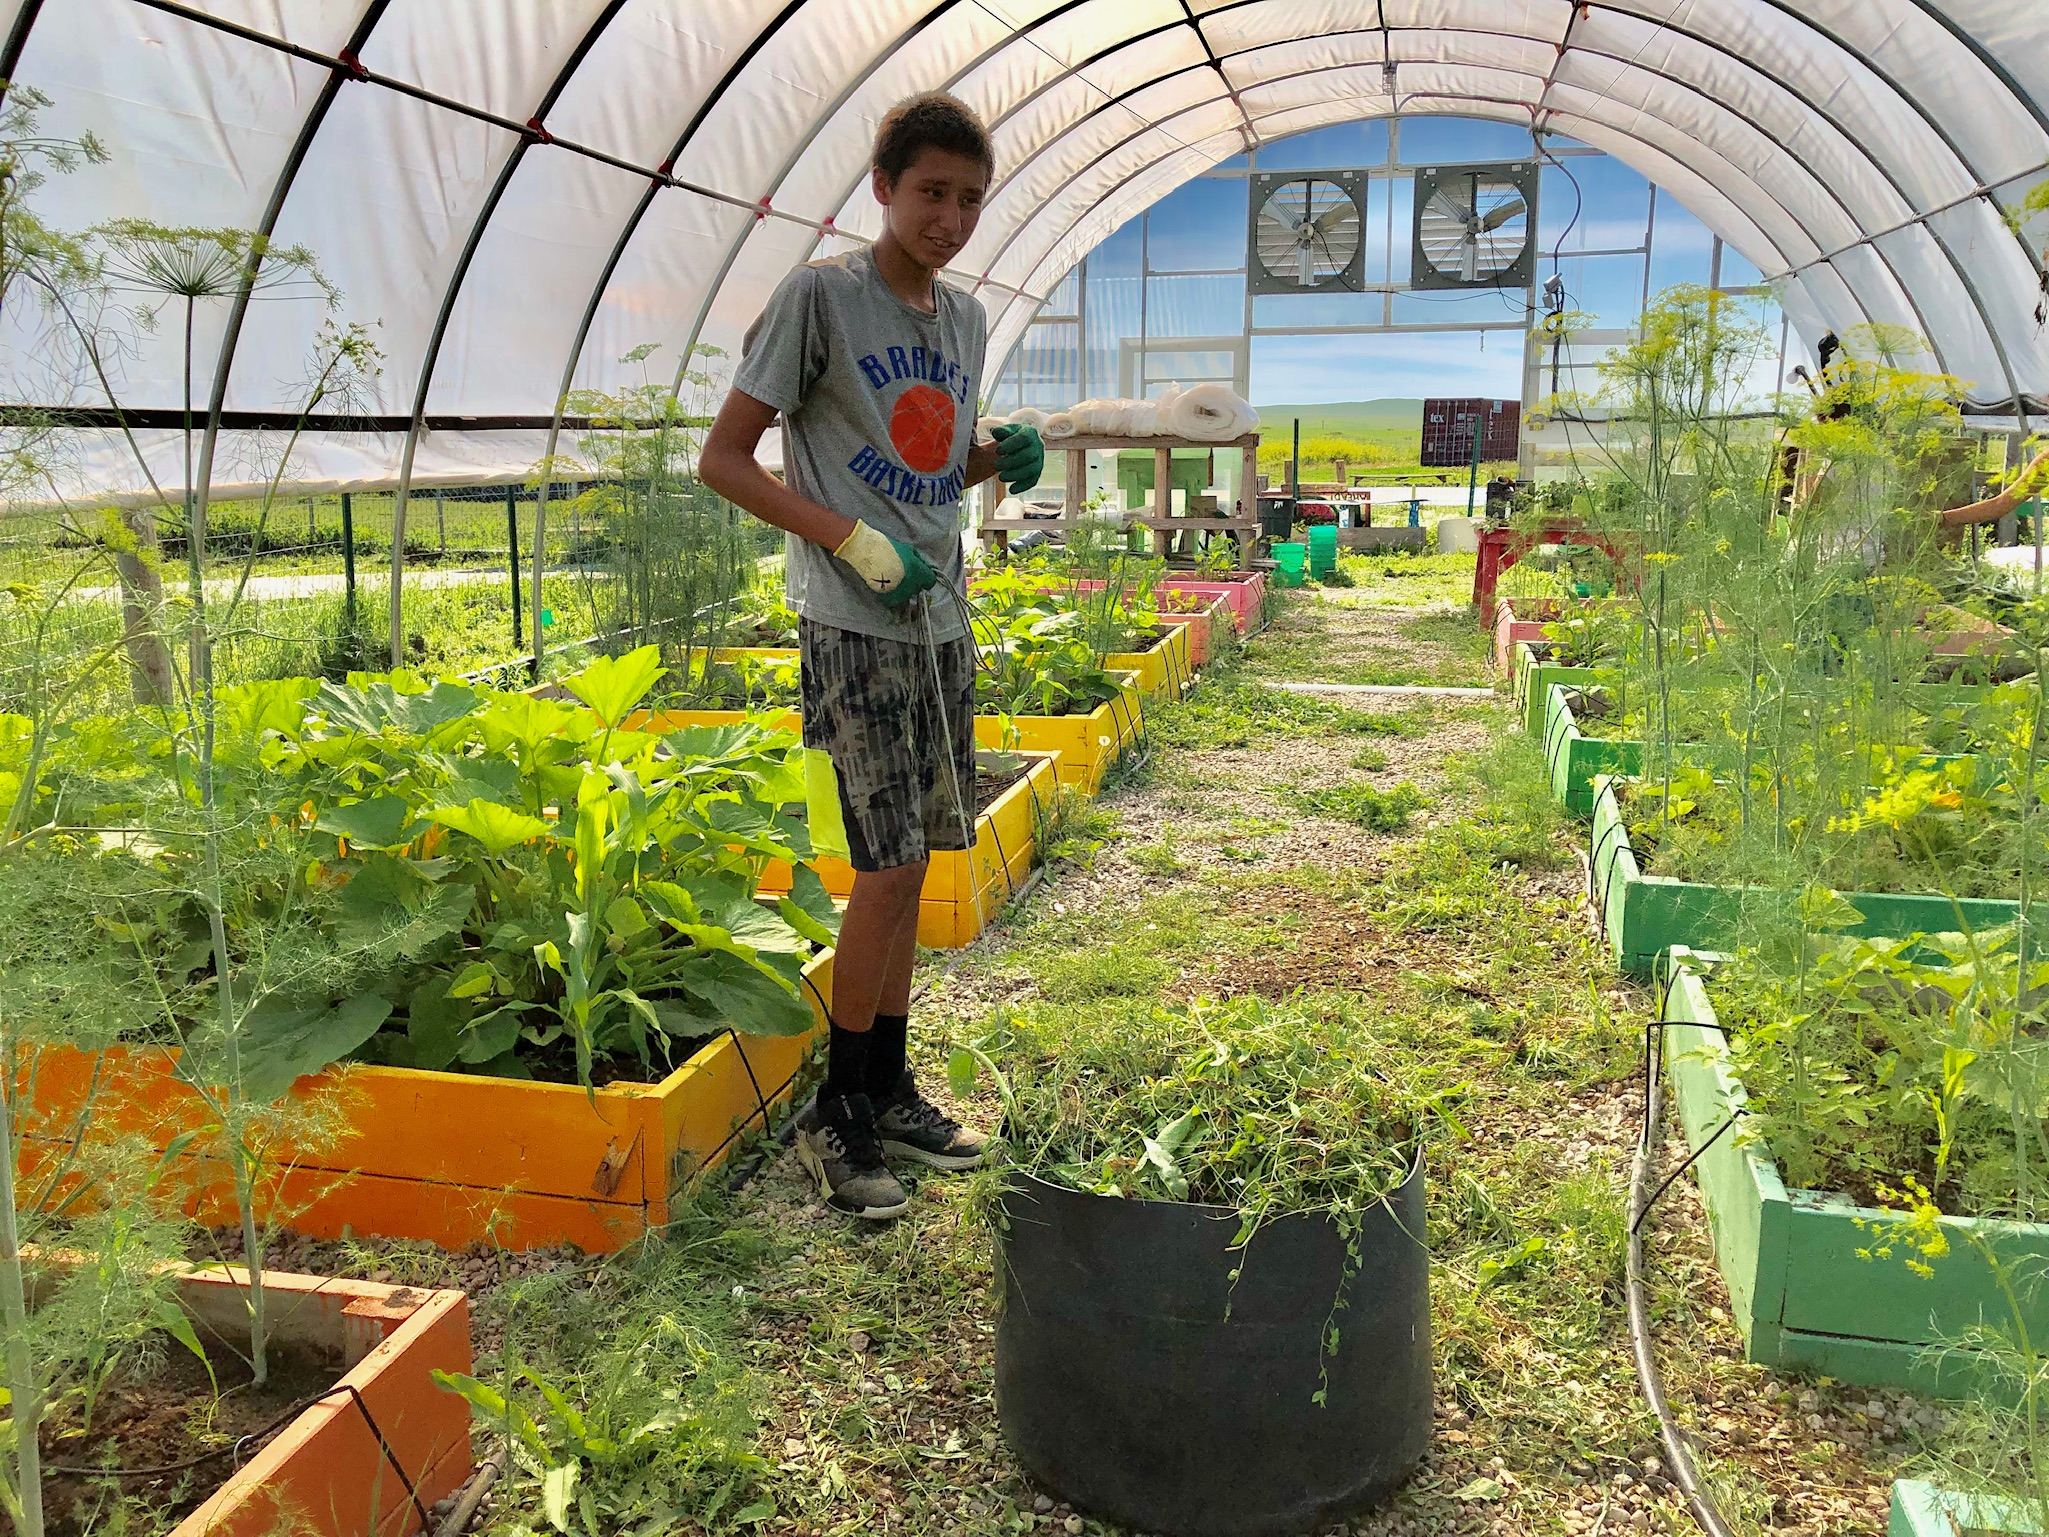 Gardening Classes  in our farm & greenhouse where children learn about food sources and healthy lifestyles.